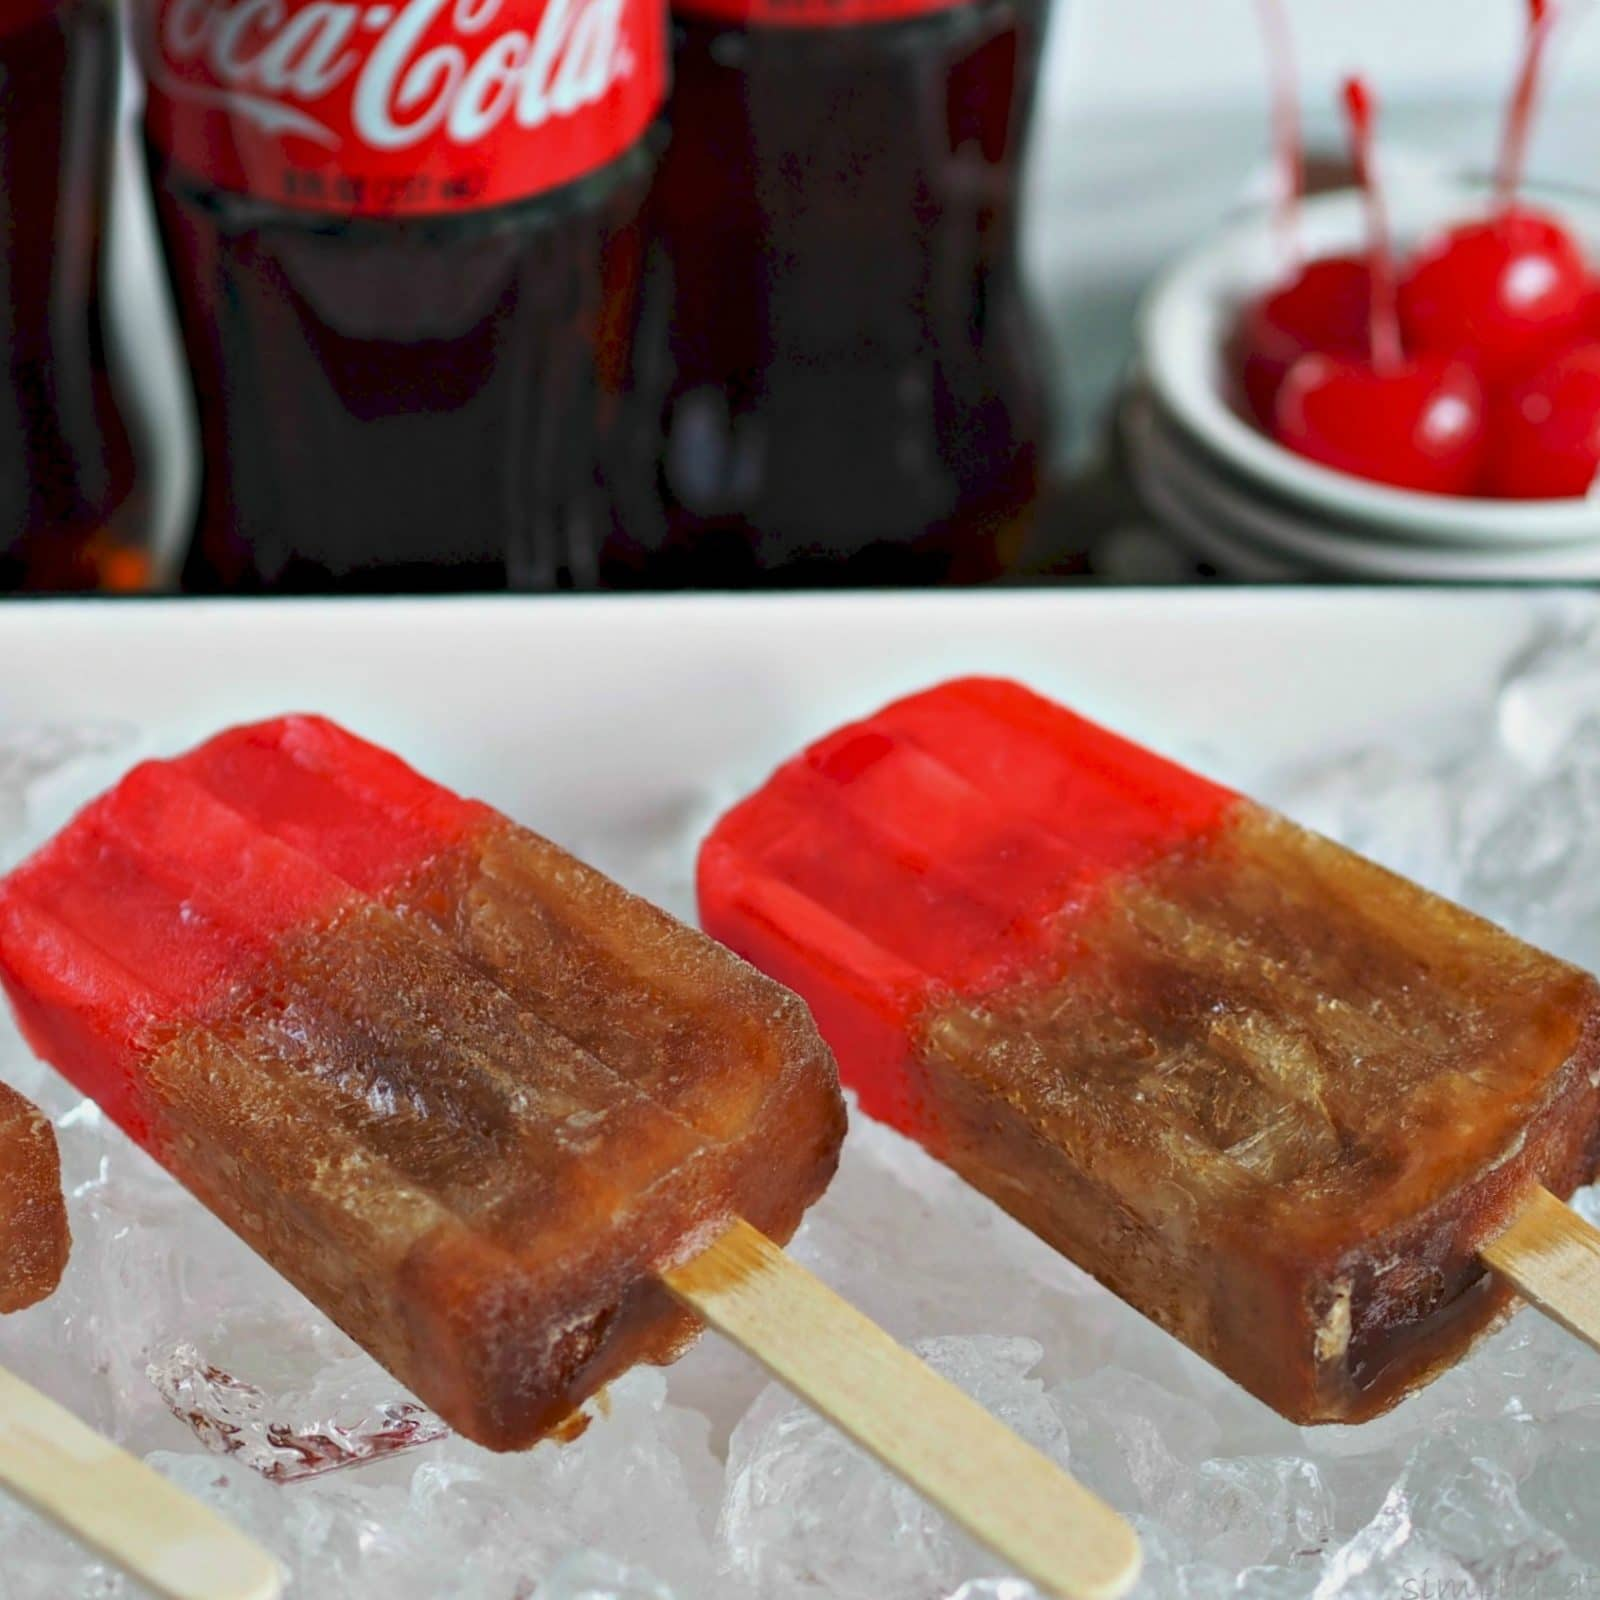 Cherry Coke Popsicles are a fun take on the real thing. www.simplysated.com